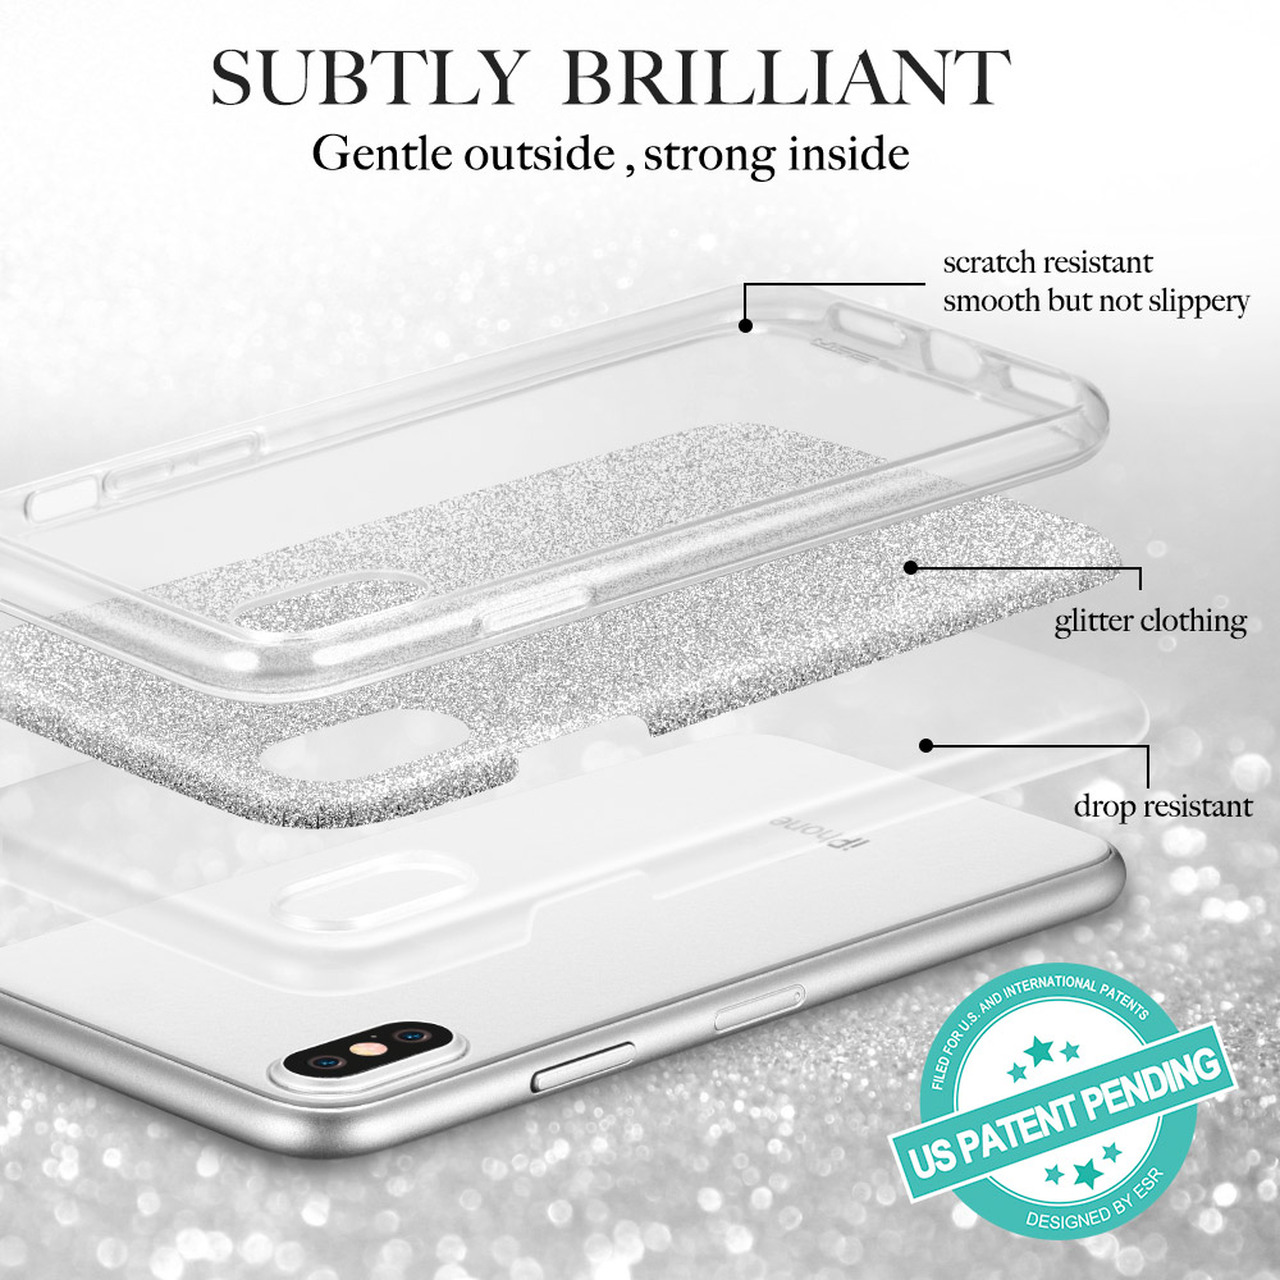 8ed5f15bd6 ... Case for iphone X 5.8 inch, ESR Makeup Series Back Cover Shinning  Protective Bumper Bling ...